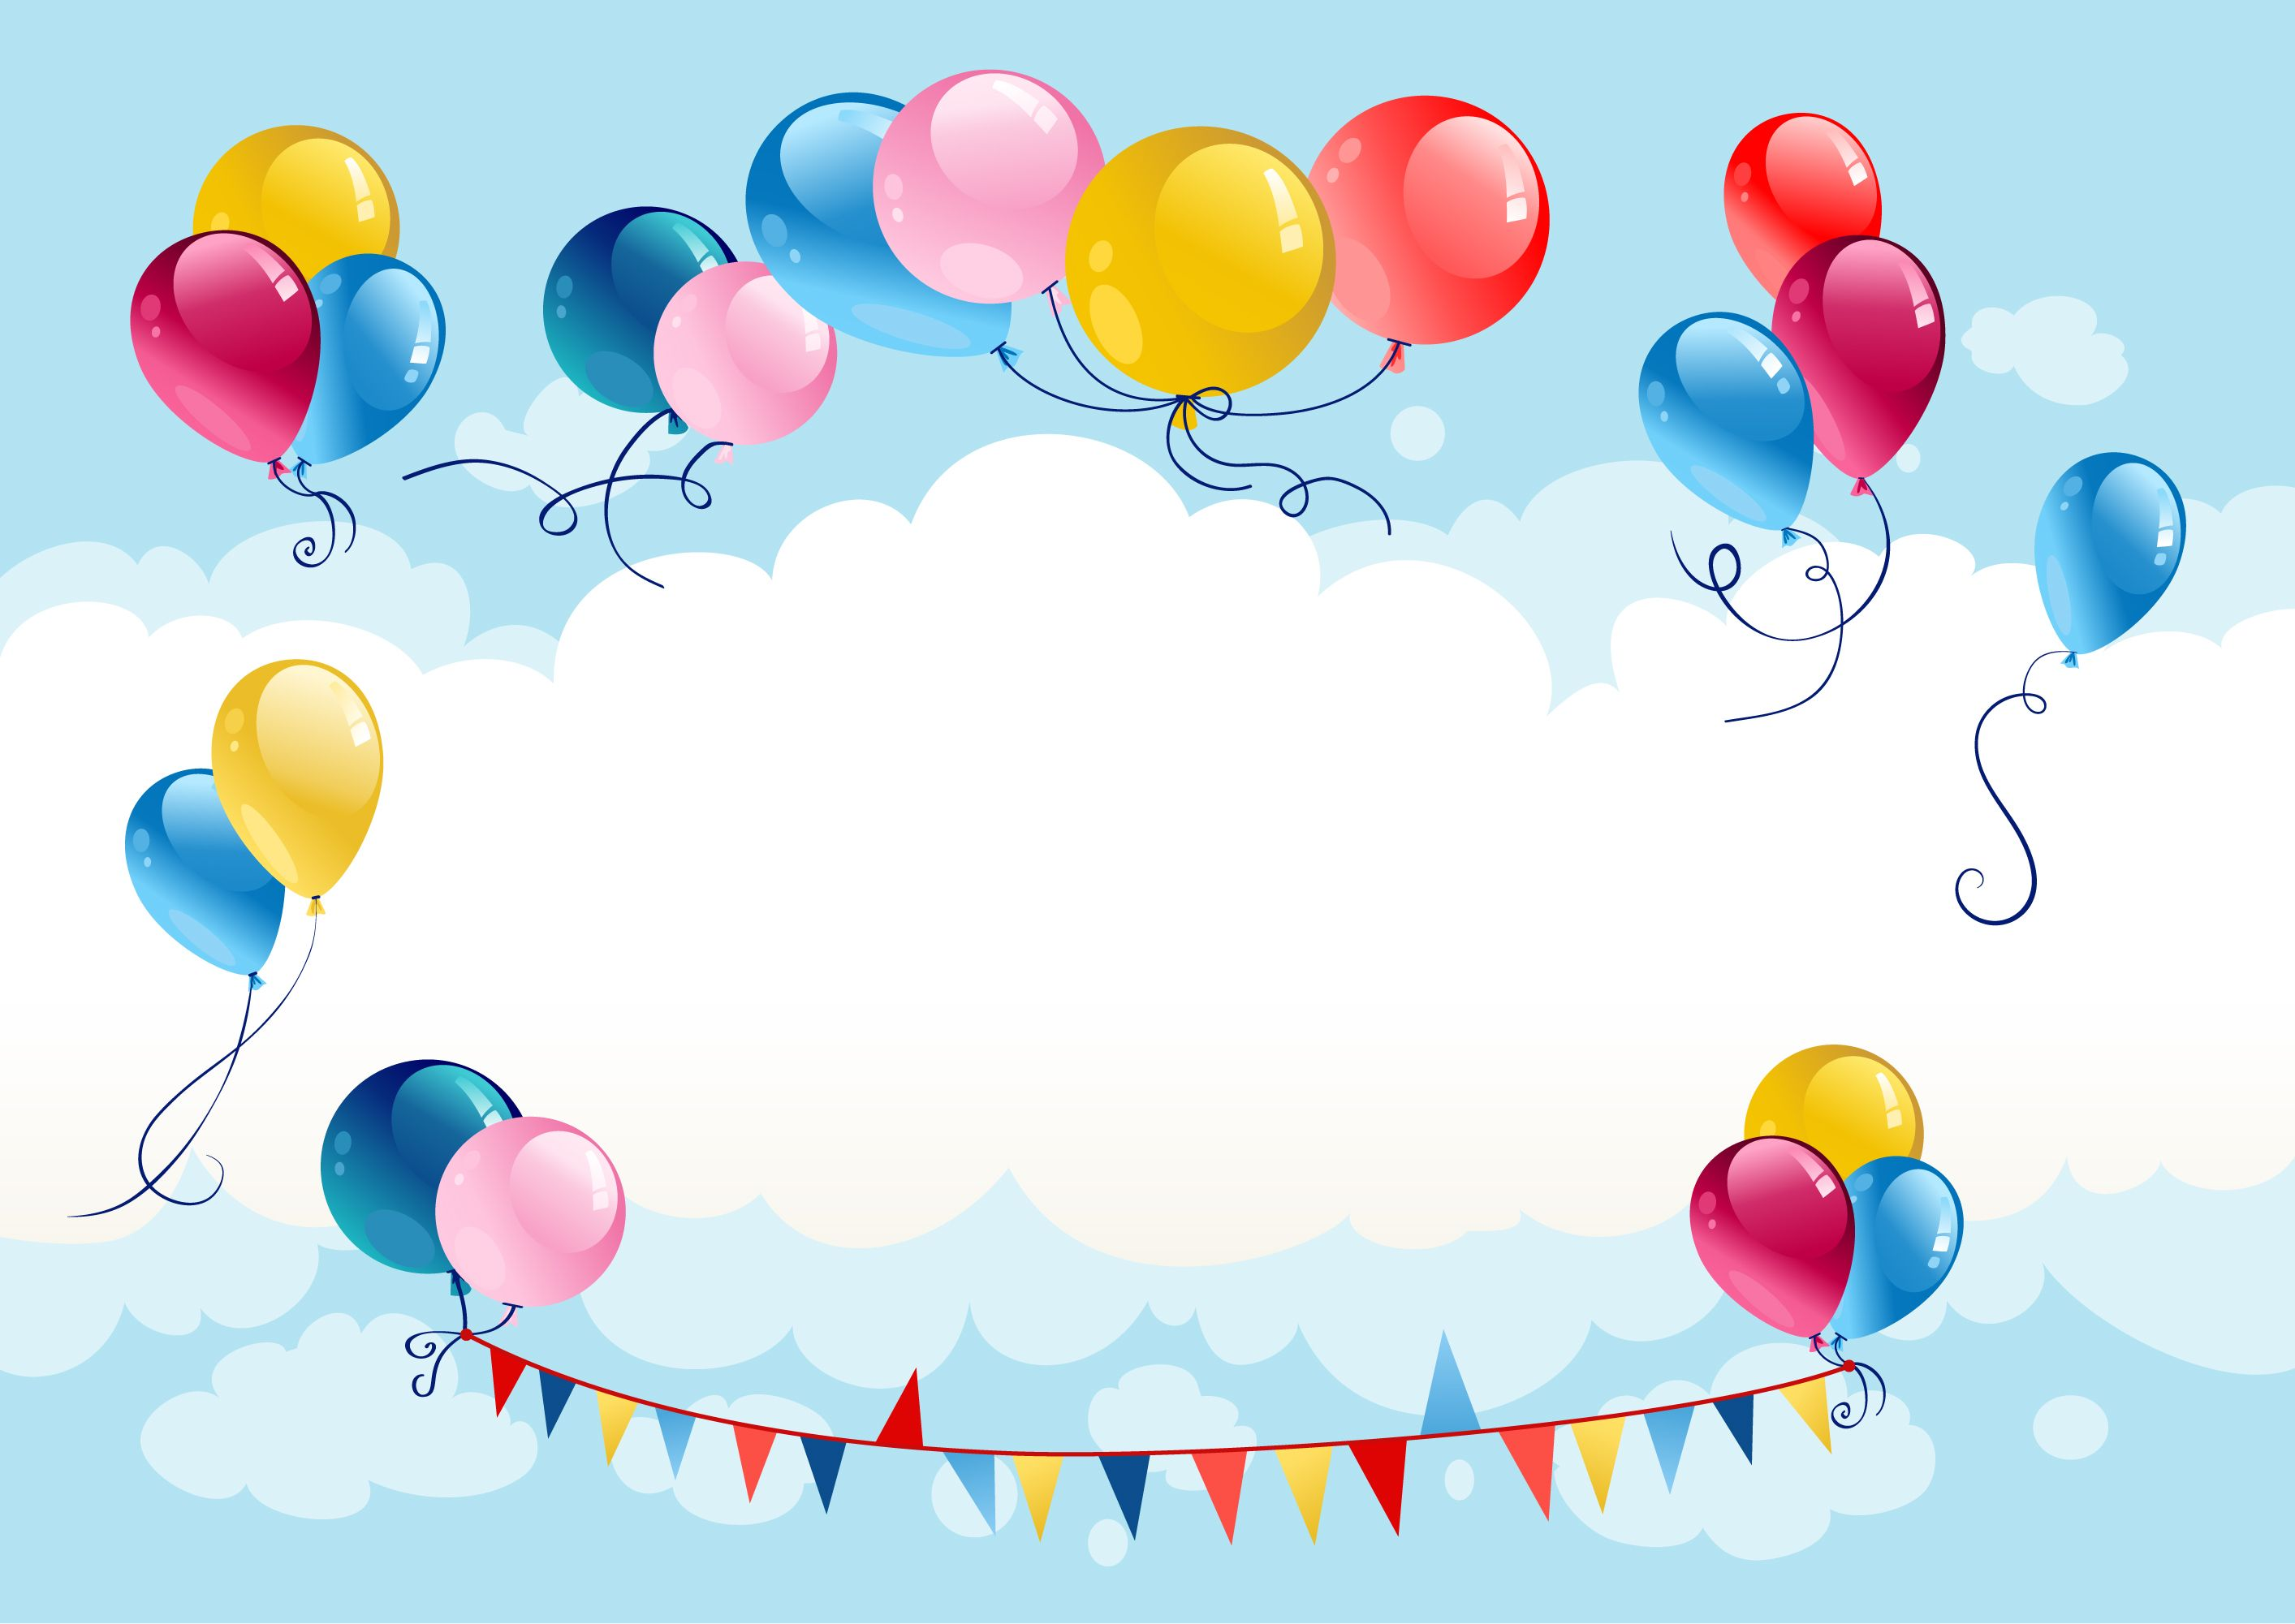 Playful And Colorful Balloons Blue Sky Background Colourful Balloons Colorful Frames Happy Birthday Frame